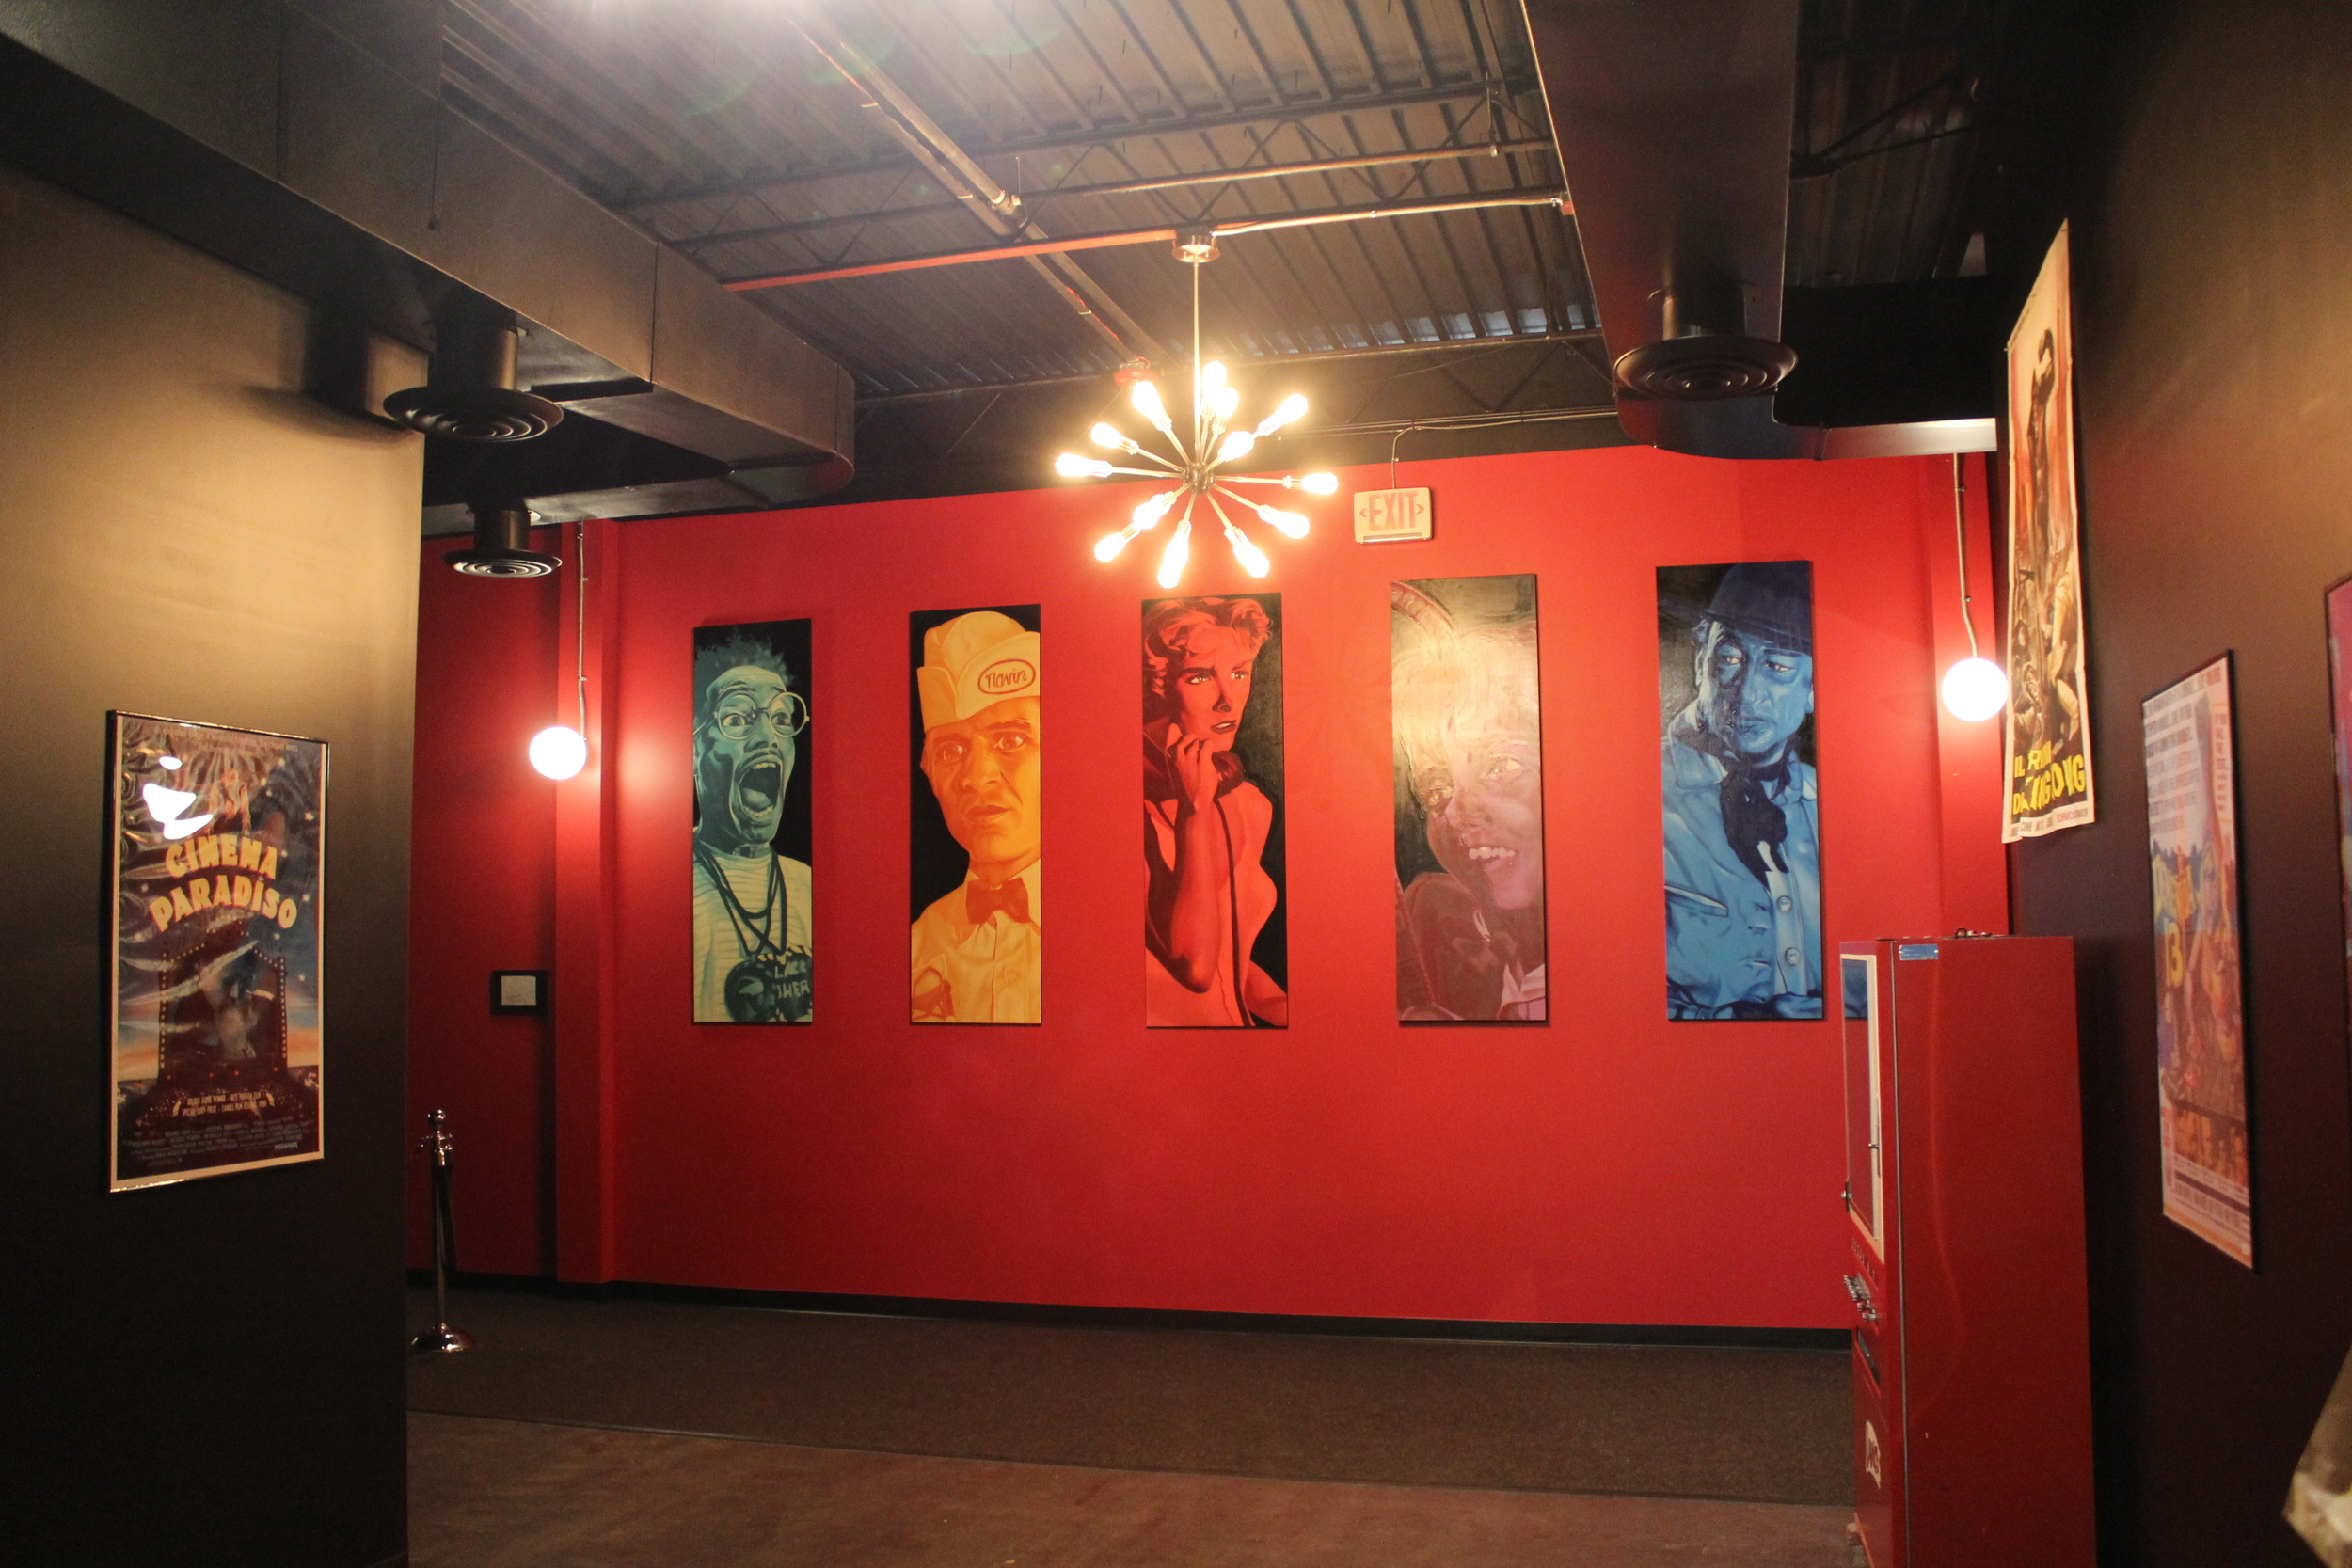 Picture of Wall with Paintings by Gus Cutty of Famous Movie images